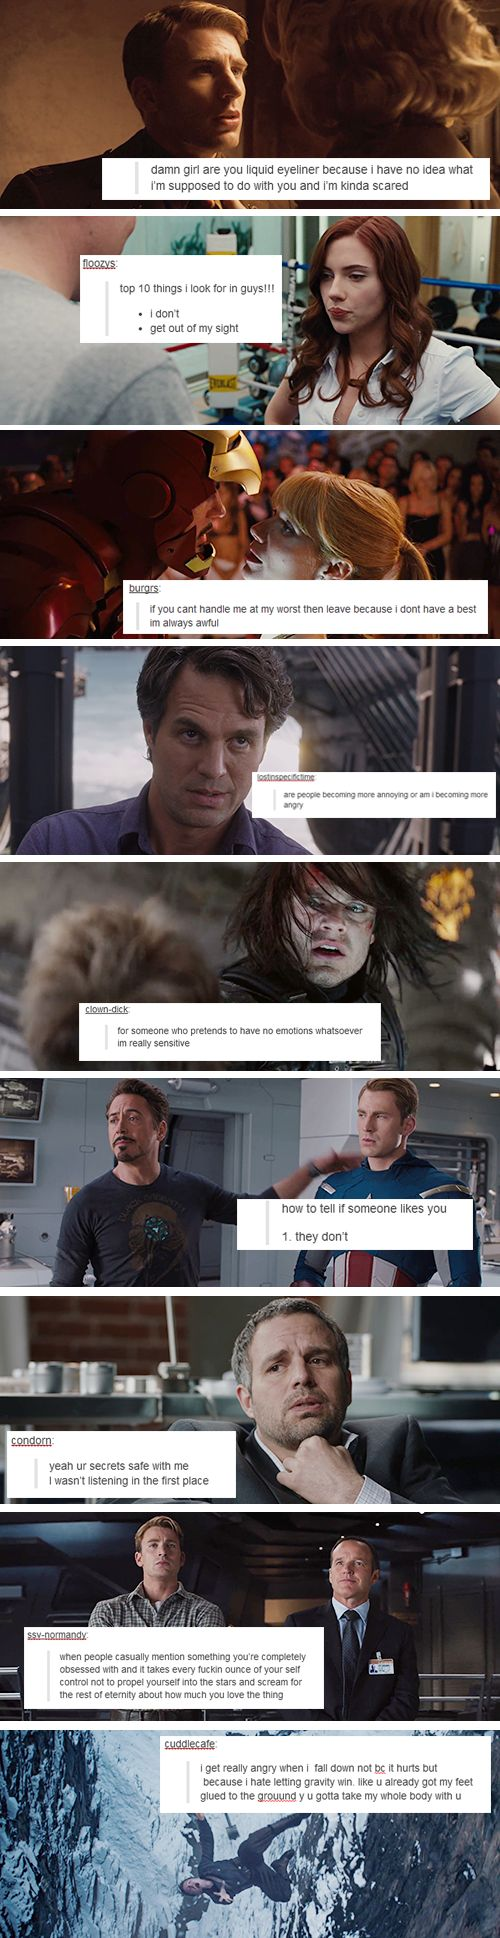 If the Avengers were on Tumblr... The intimate thoughts of Steve Rogers, Natasha Romanov, Tony Stark, Bruce Banner, Bucky Barnes and Agent Coulson.